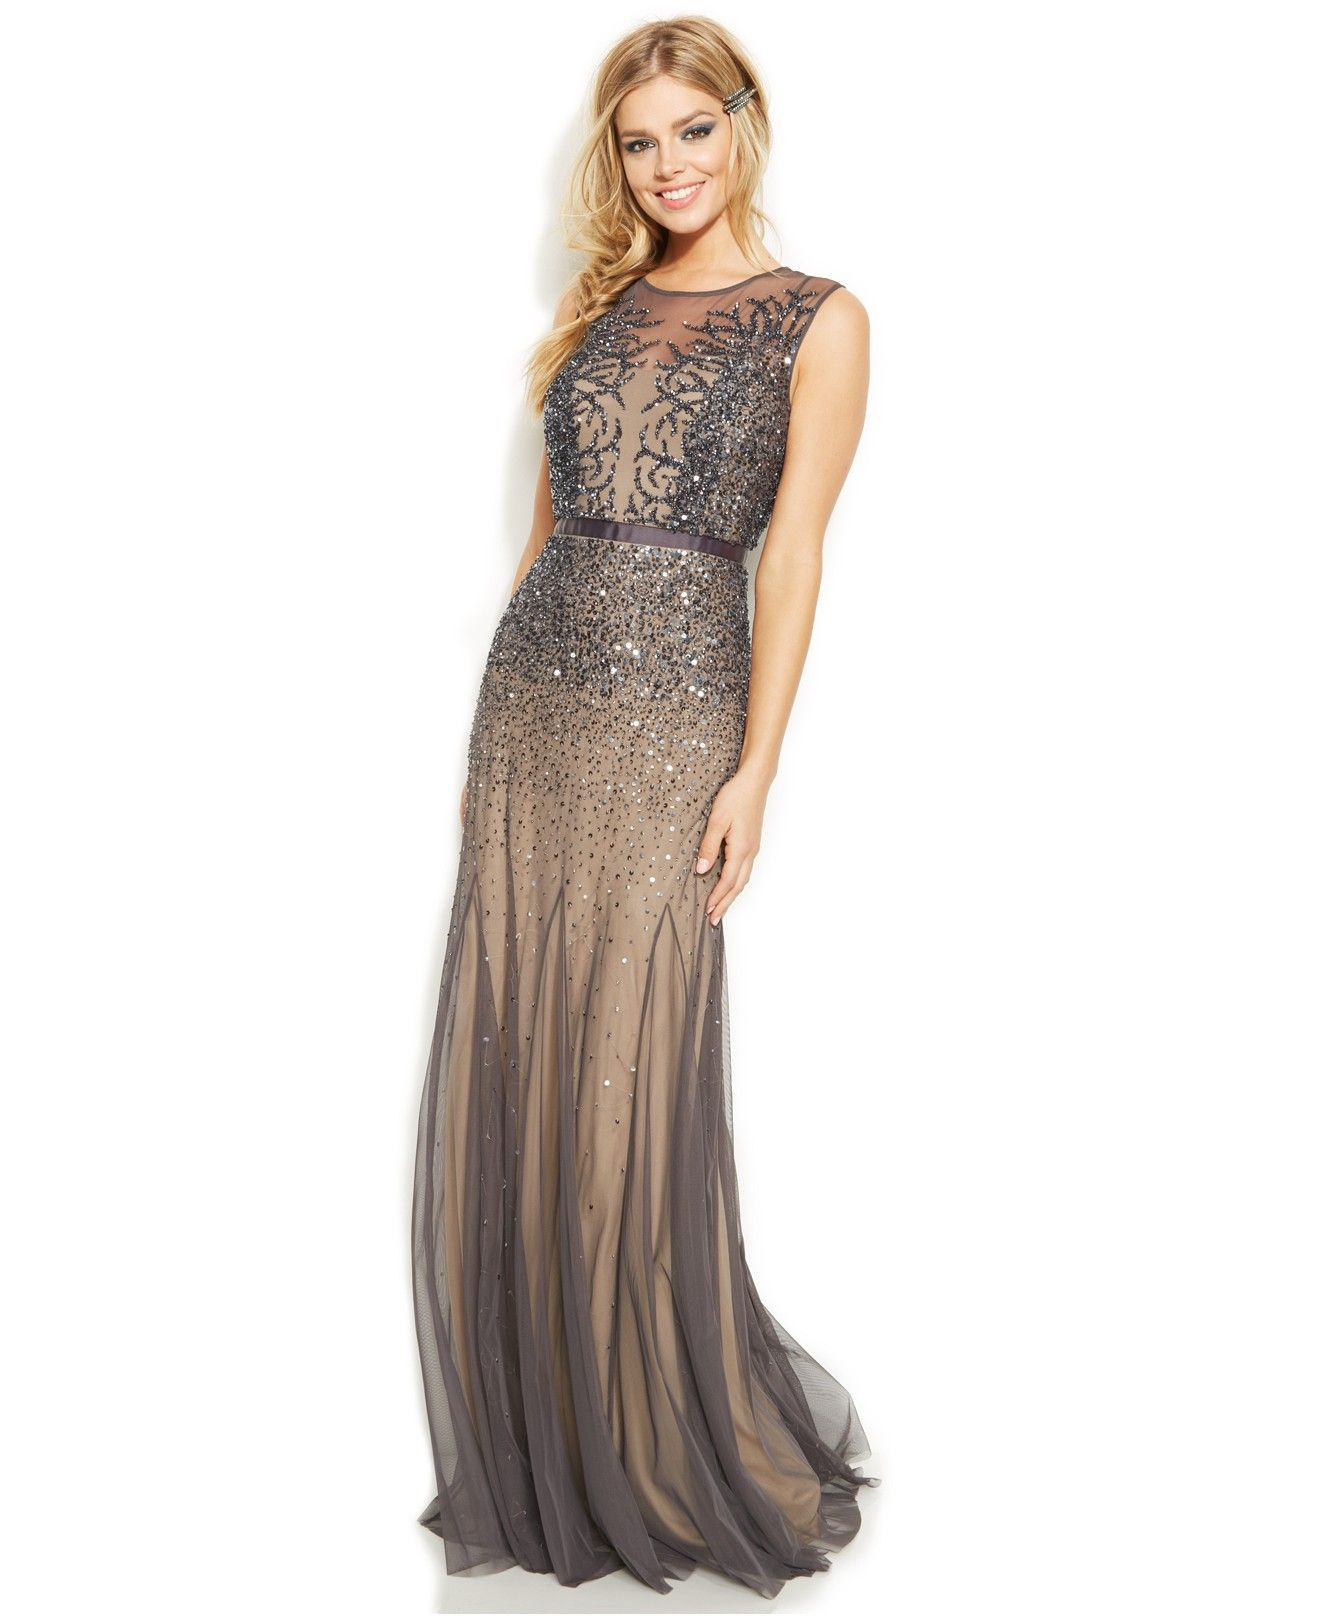 Adrianna Papell Sleeveless Beaded Illusion Gown - Juniors Shop All ...